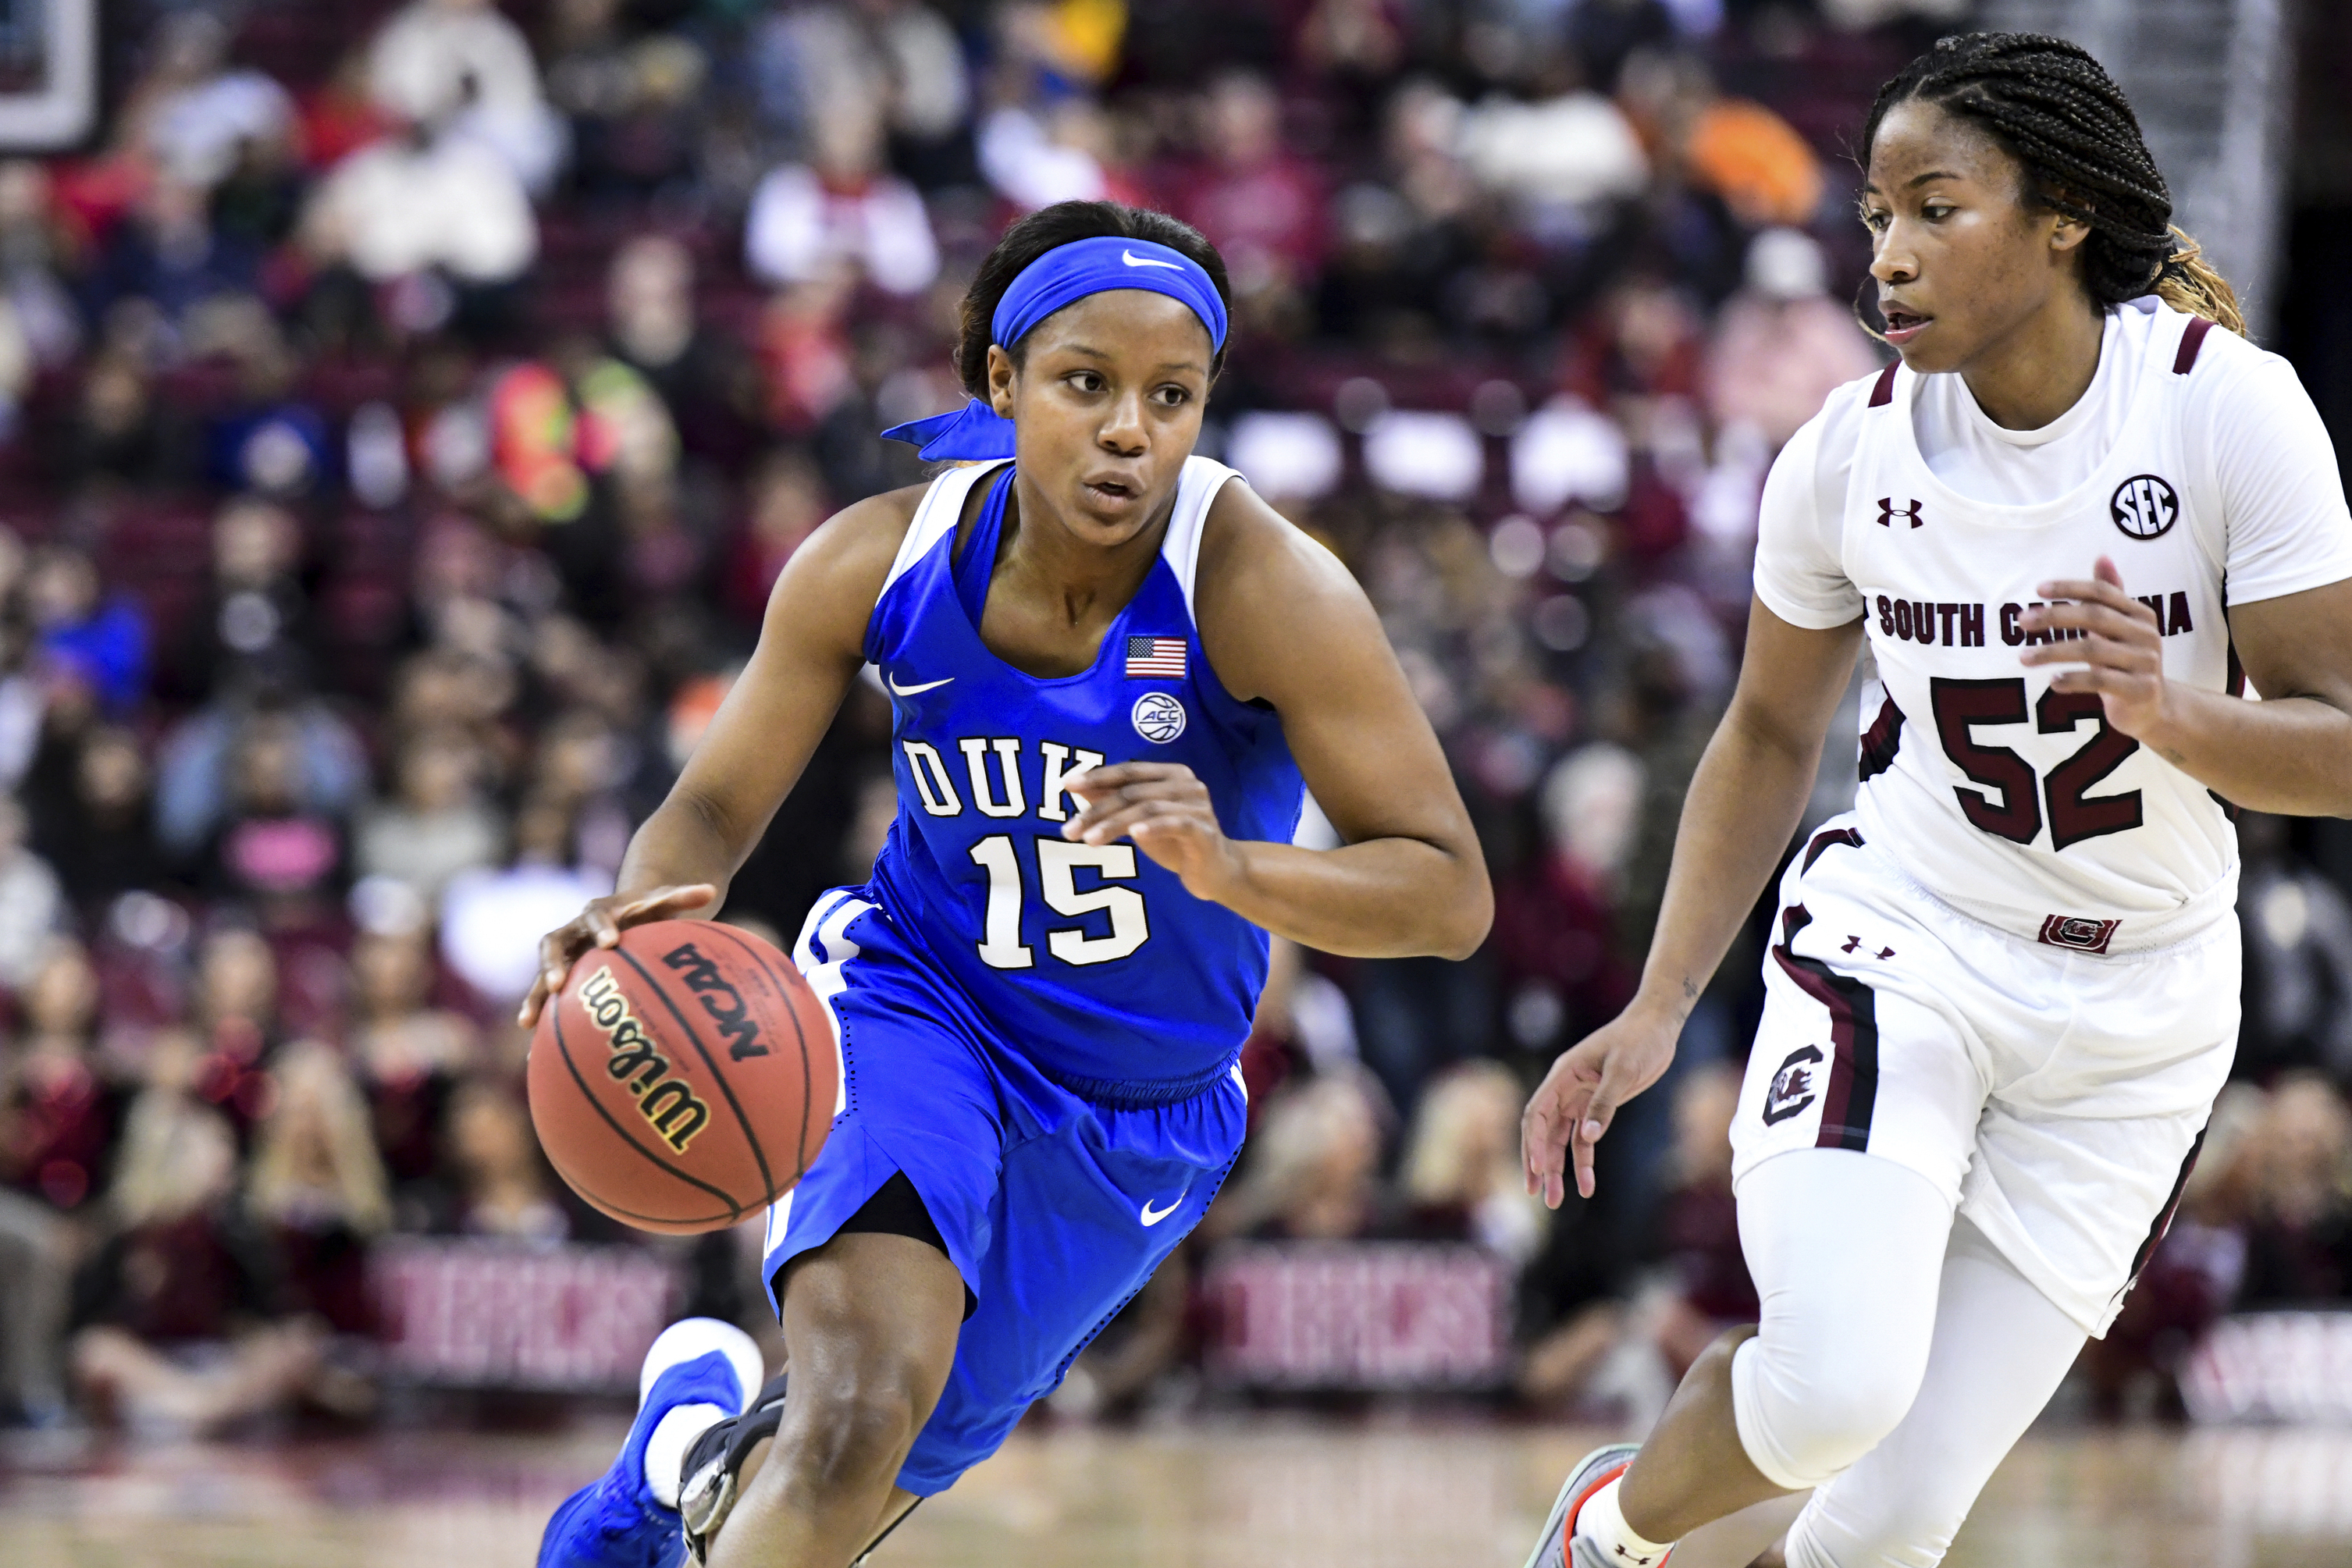 Duke Blue Devils End Women's Basketball Season Amid Coronavirus Plague Concerns